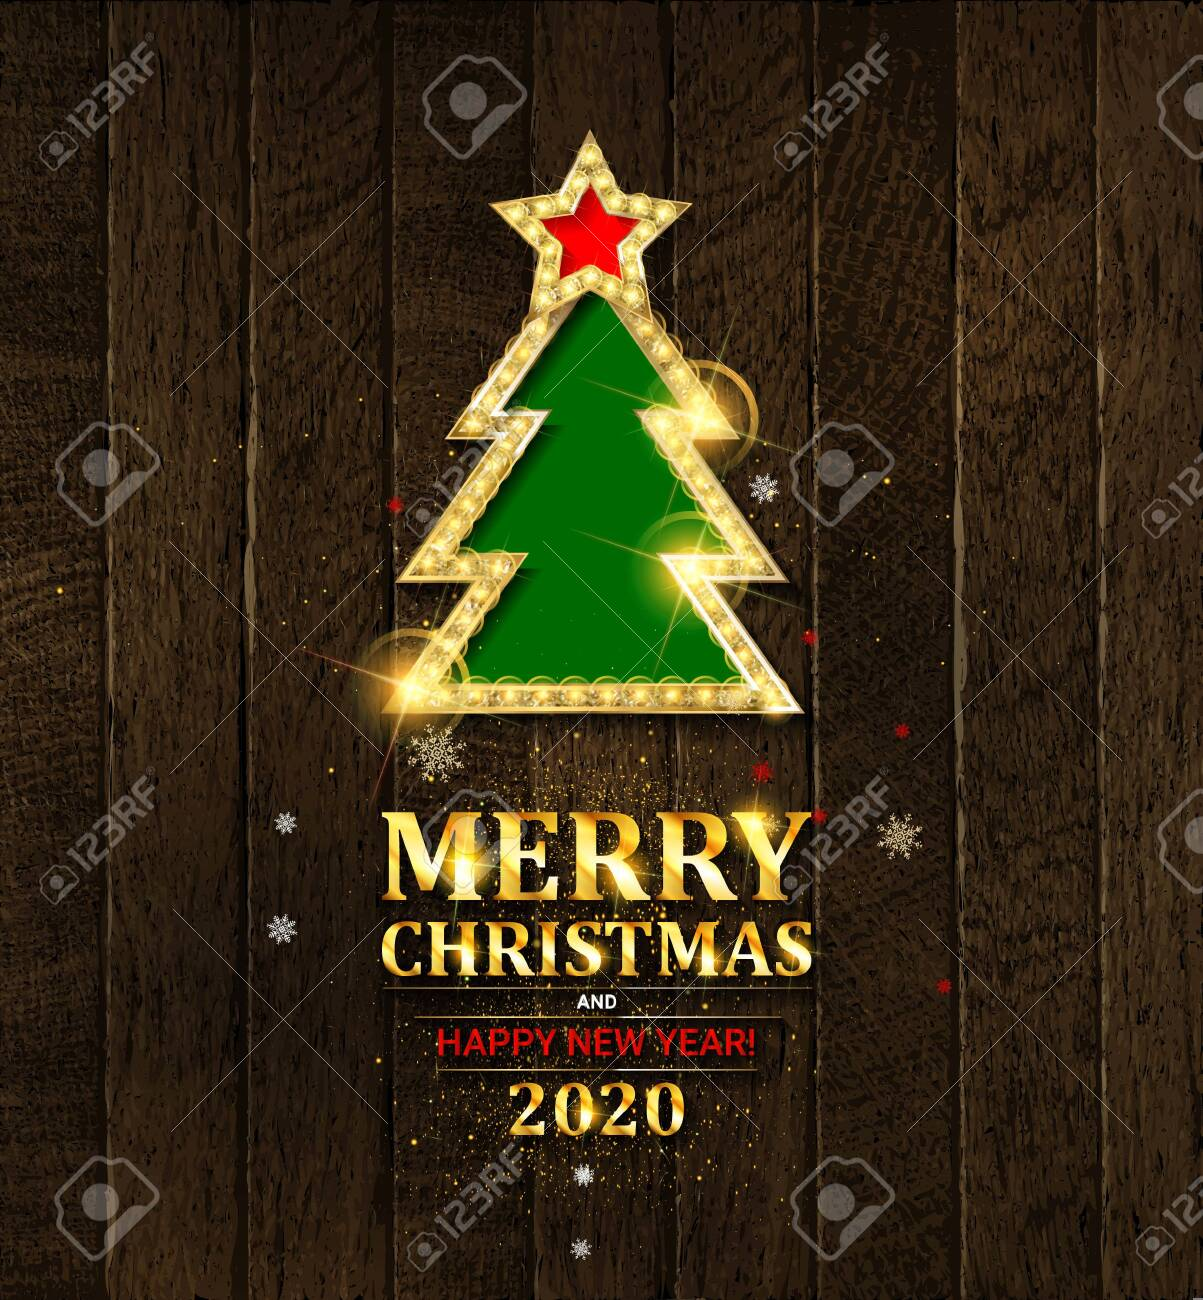 Fancy Christmas Party 2020 Merry Christmas And Happy New Year 2020 Fancy Gold Xmas Tree